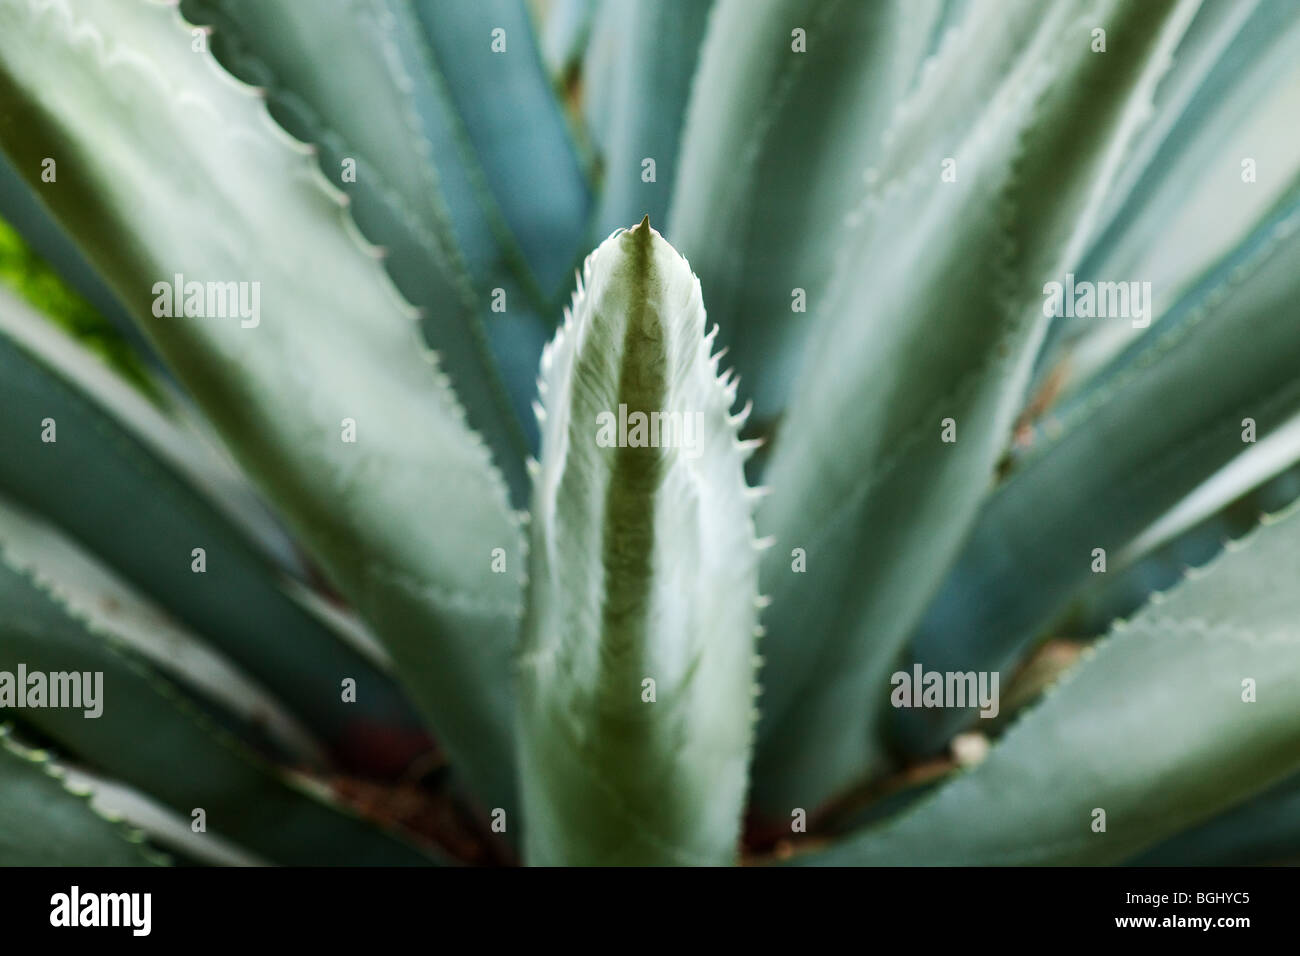 green succulent background with selective focus - Stock Image